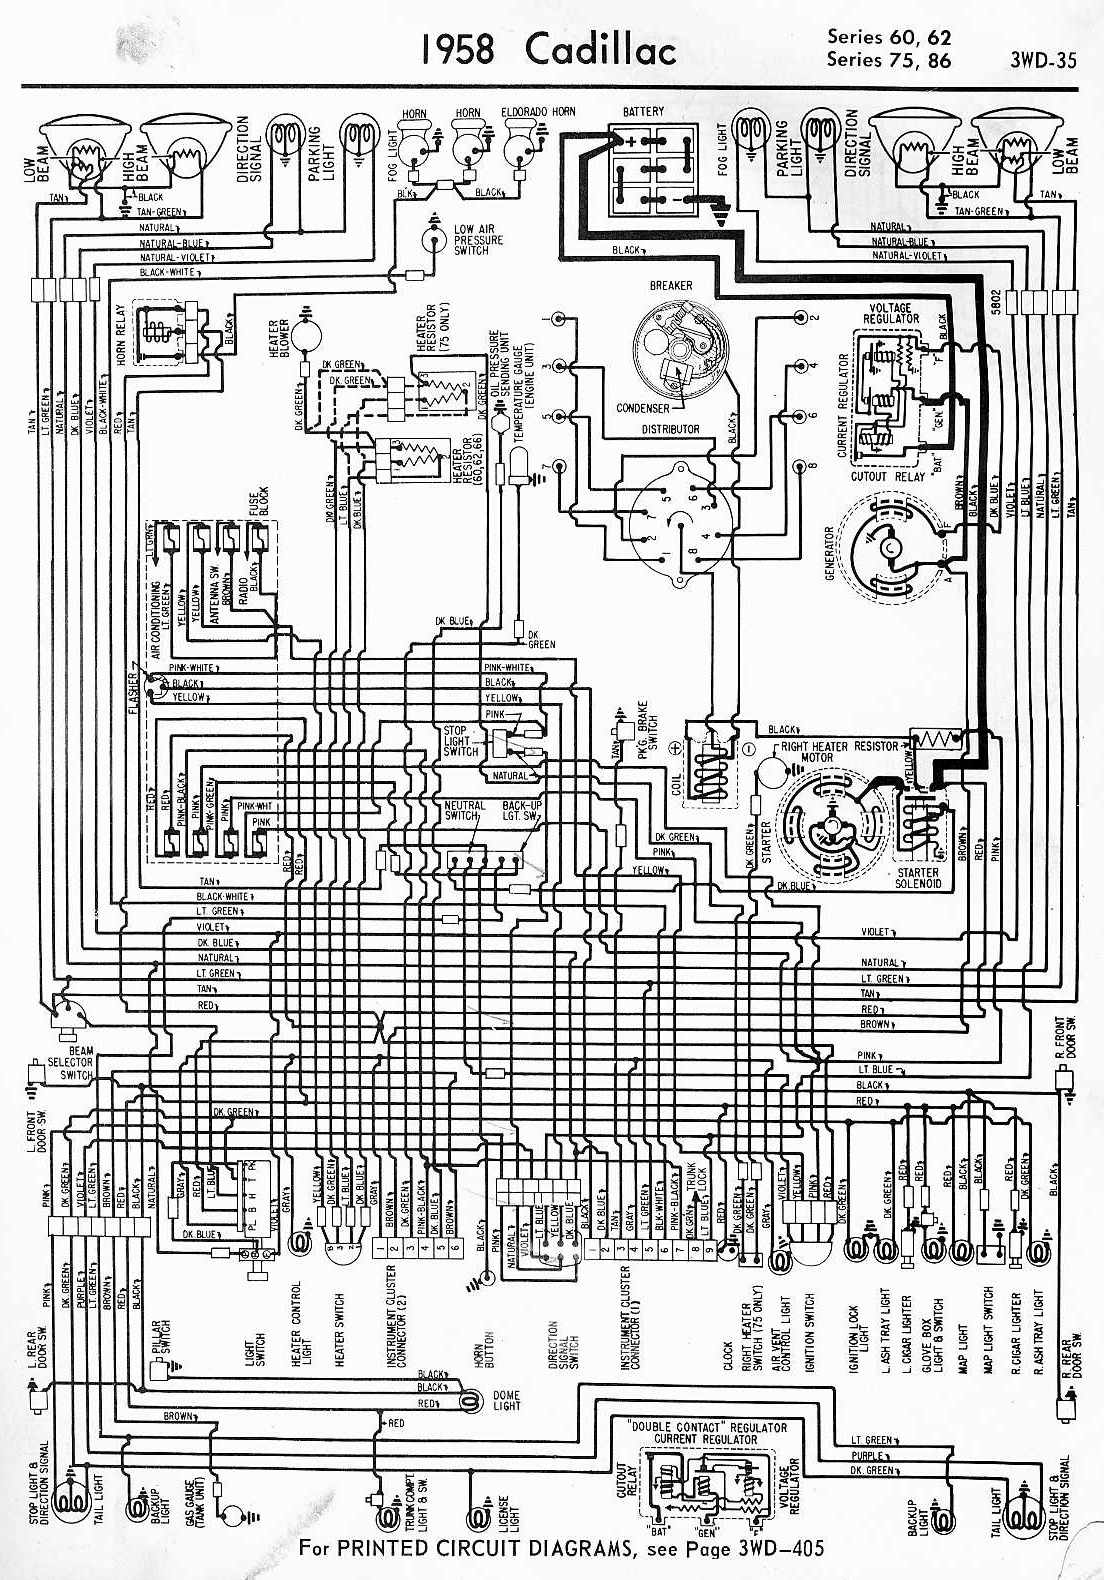 wiring diagram for 1958 cadillac 60 62 75 86 series?t=1508149295 cadillac car manuals, wiring diagrams pdf & fault codes 2005 cadillac cts power seat wiring diagram at n-0.co